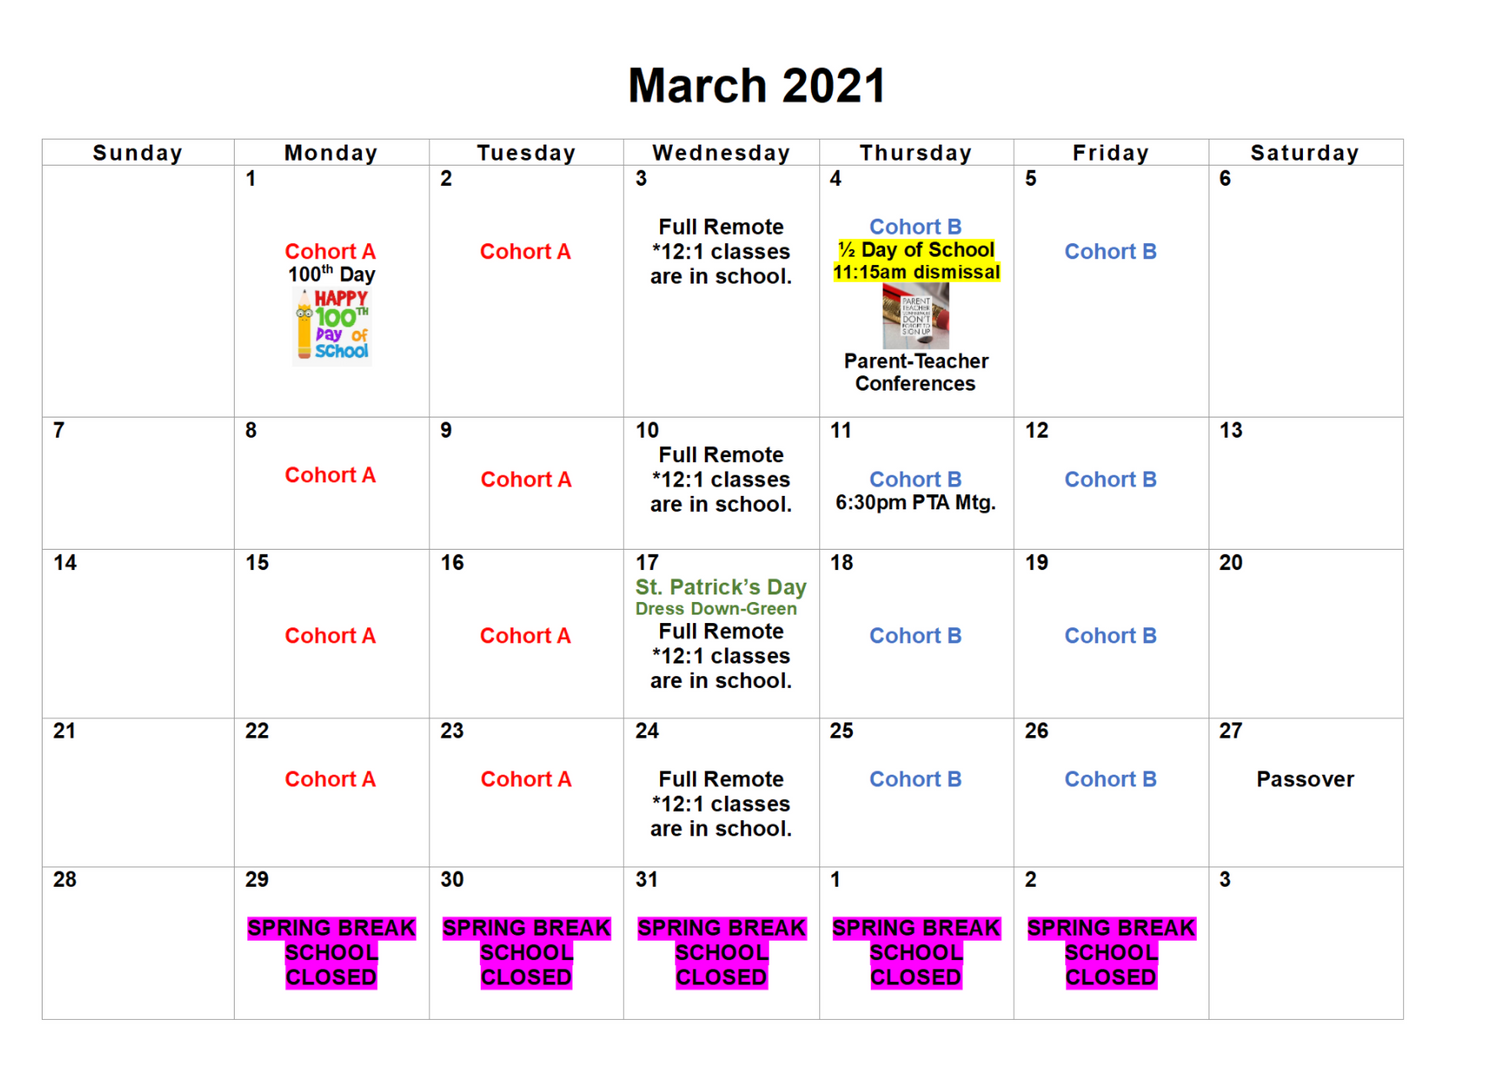 March calendar with cohort days and events